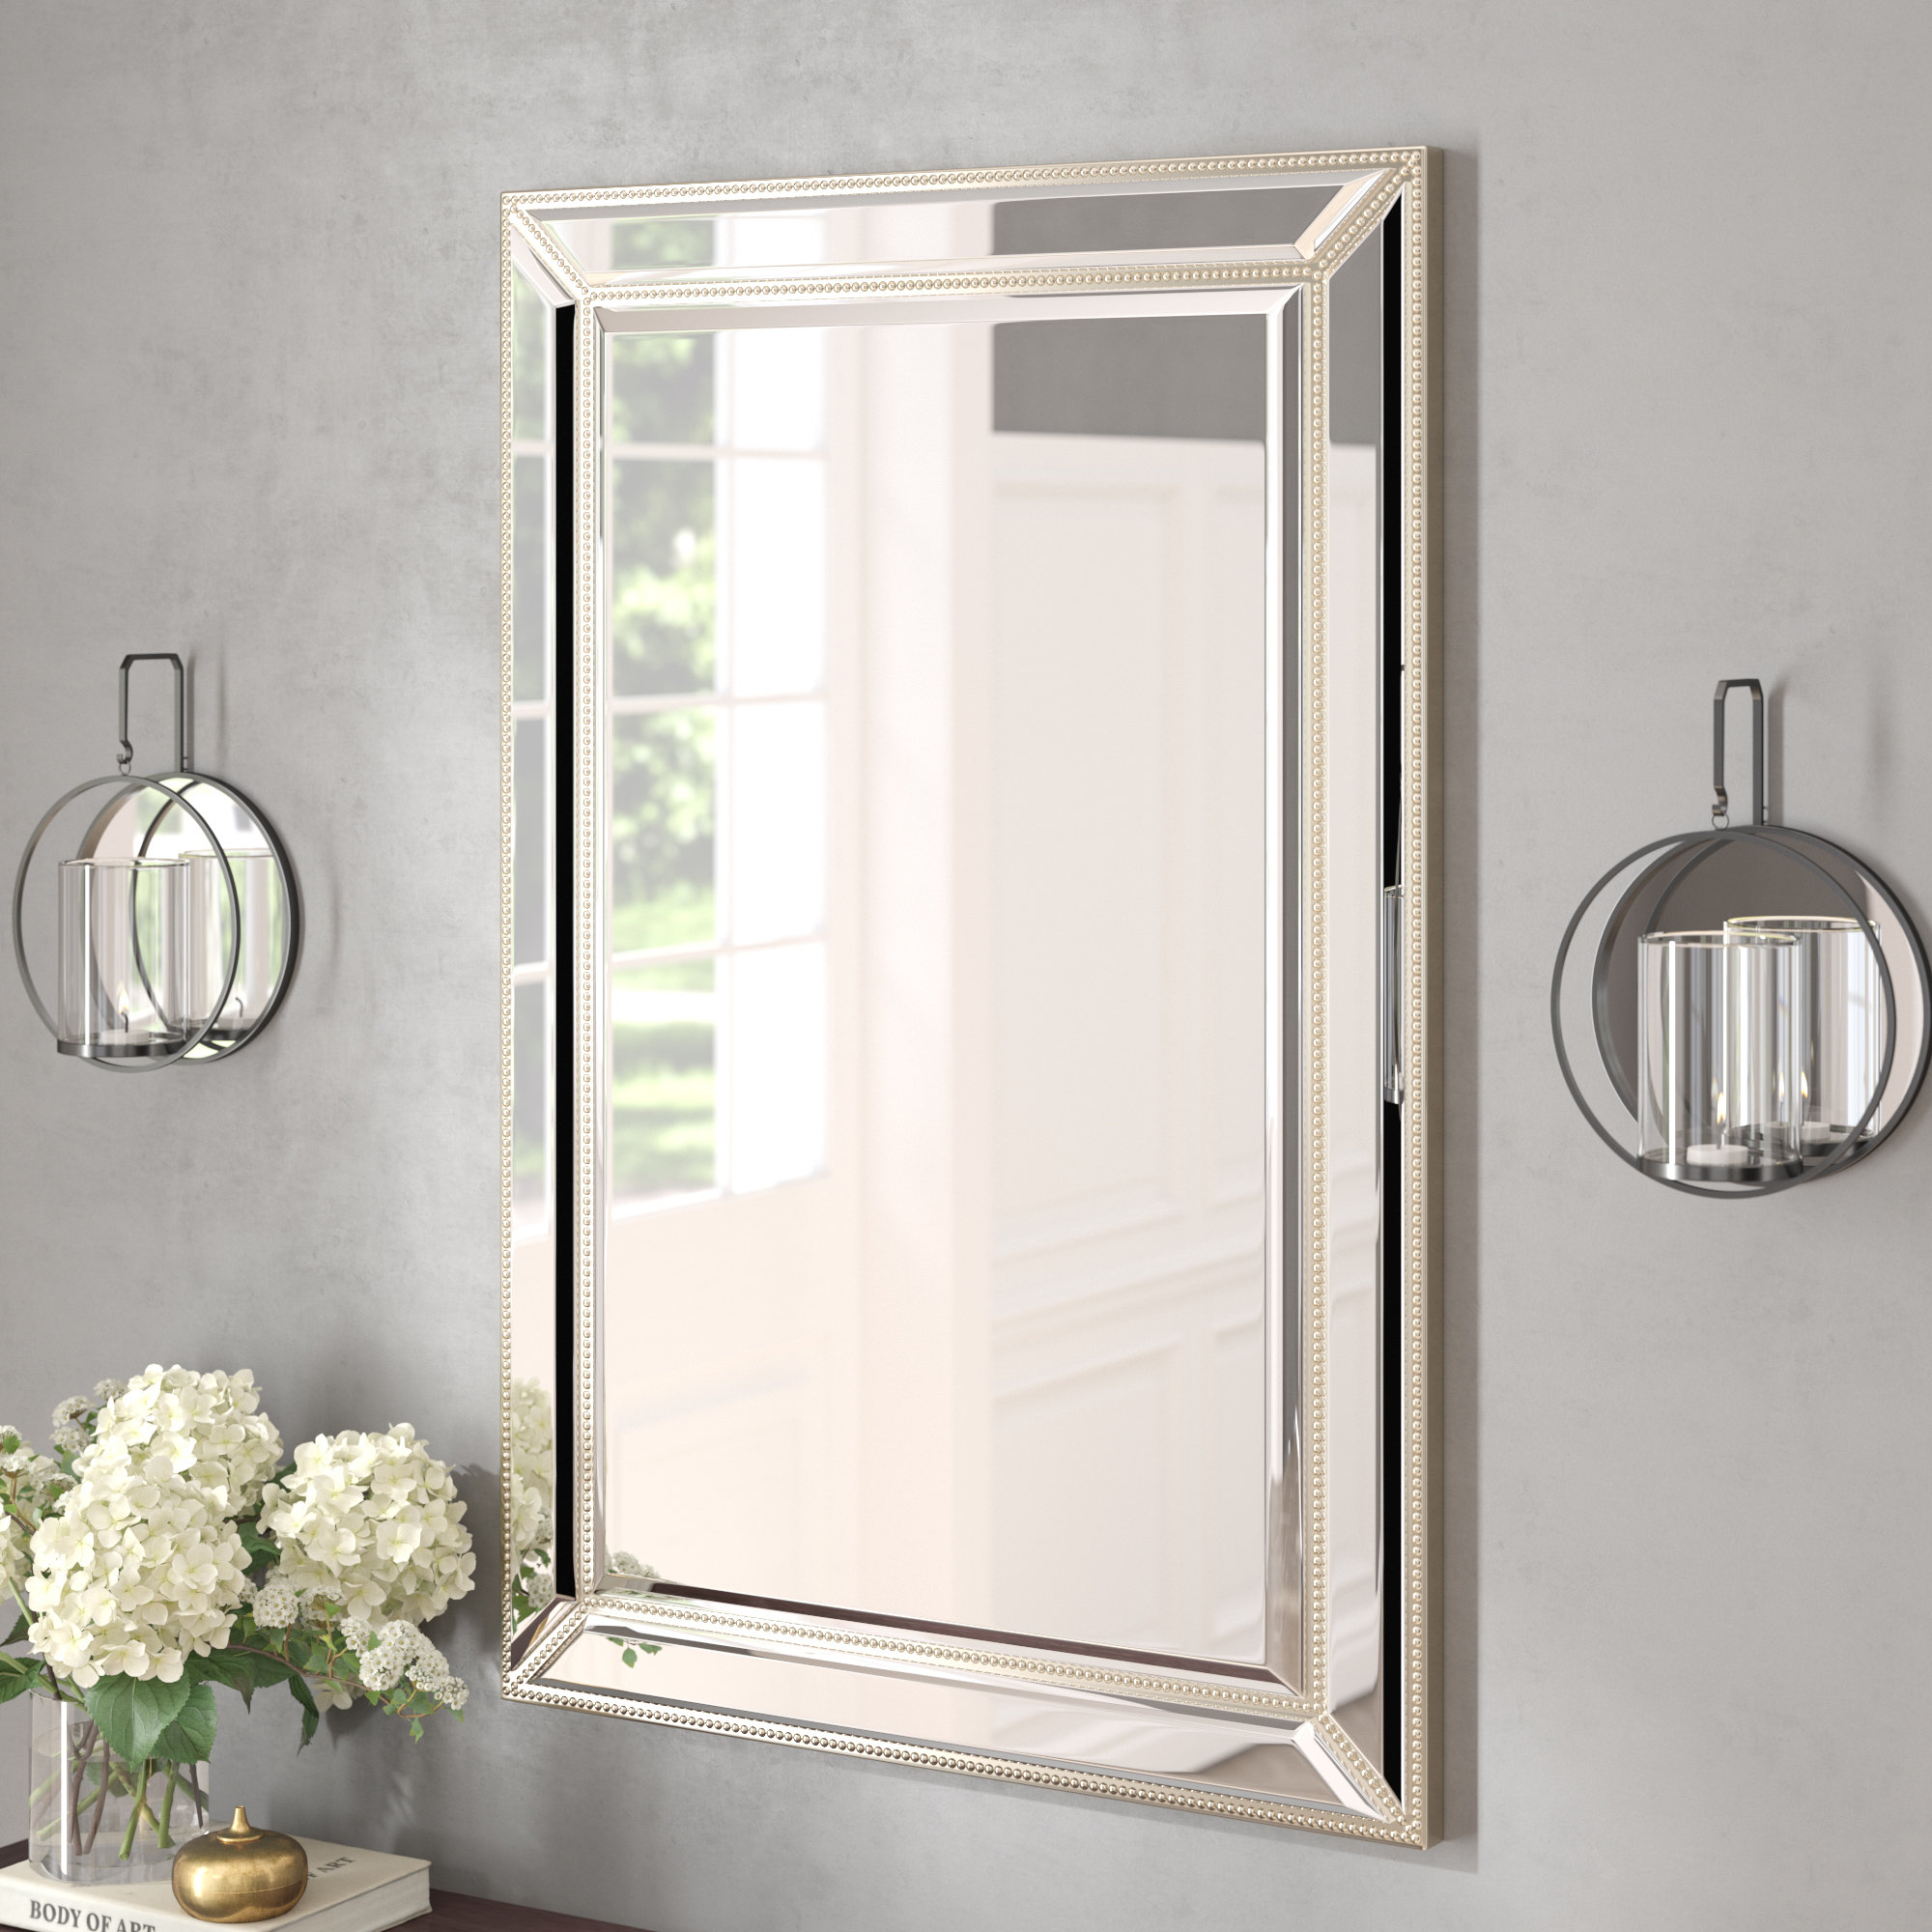 Darby Home Co Tutuala Traditional Beveled Accent Mirror Pertaining To Ansgar Accent Mirrors (View 5 of 20)